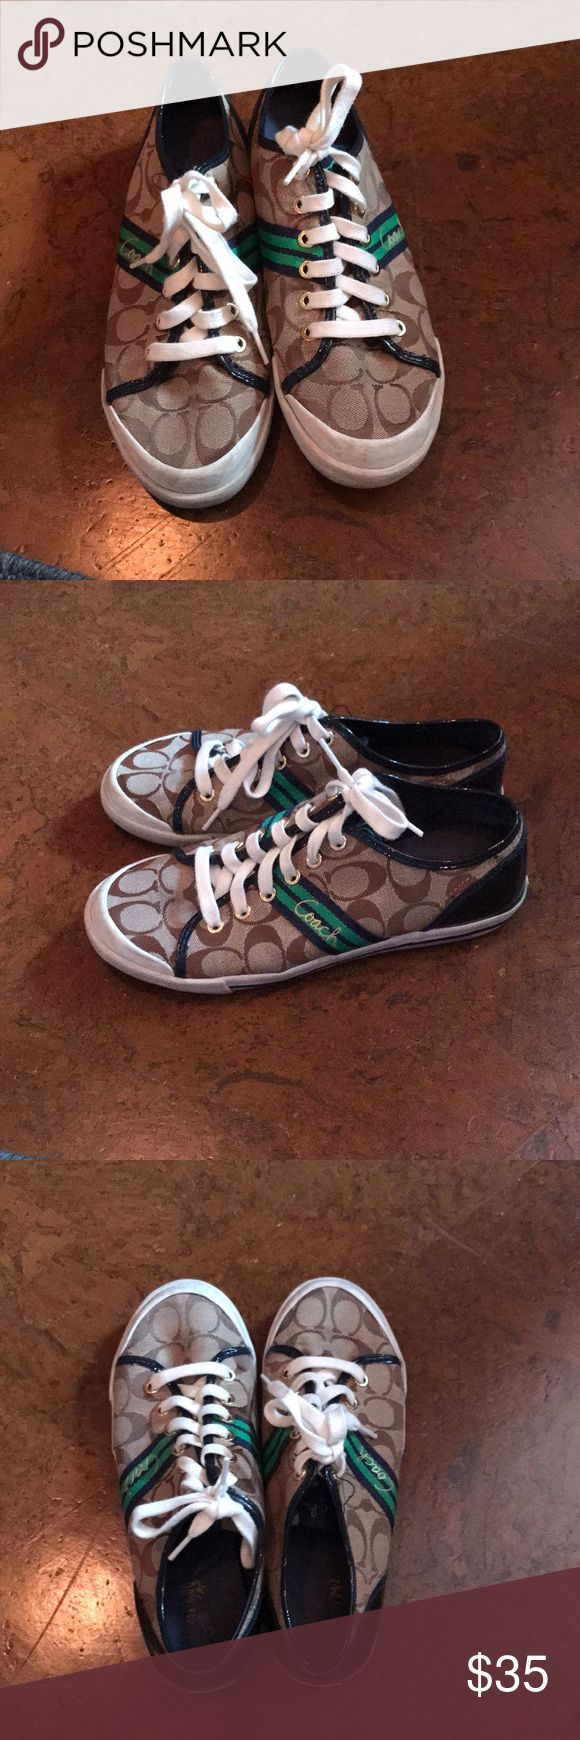 Coach tennis shoes Size 8.5, navy and green striped coach tennis shoes Shoes Sneakers